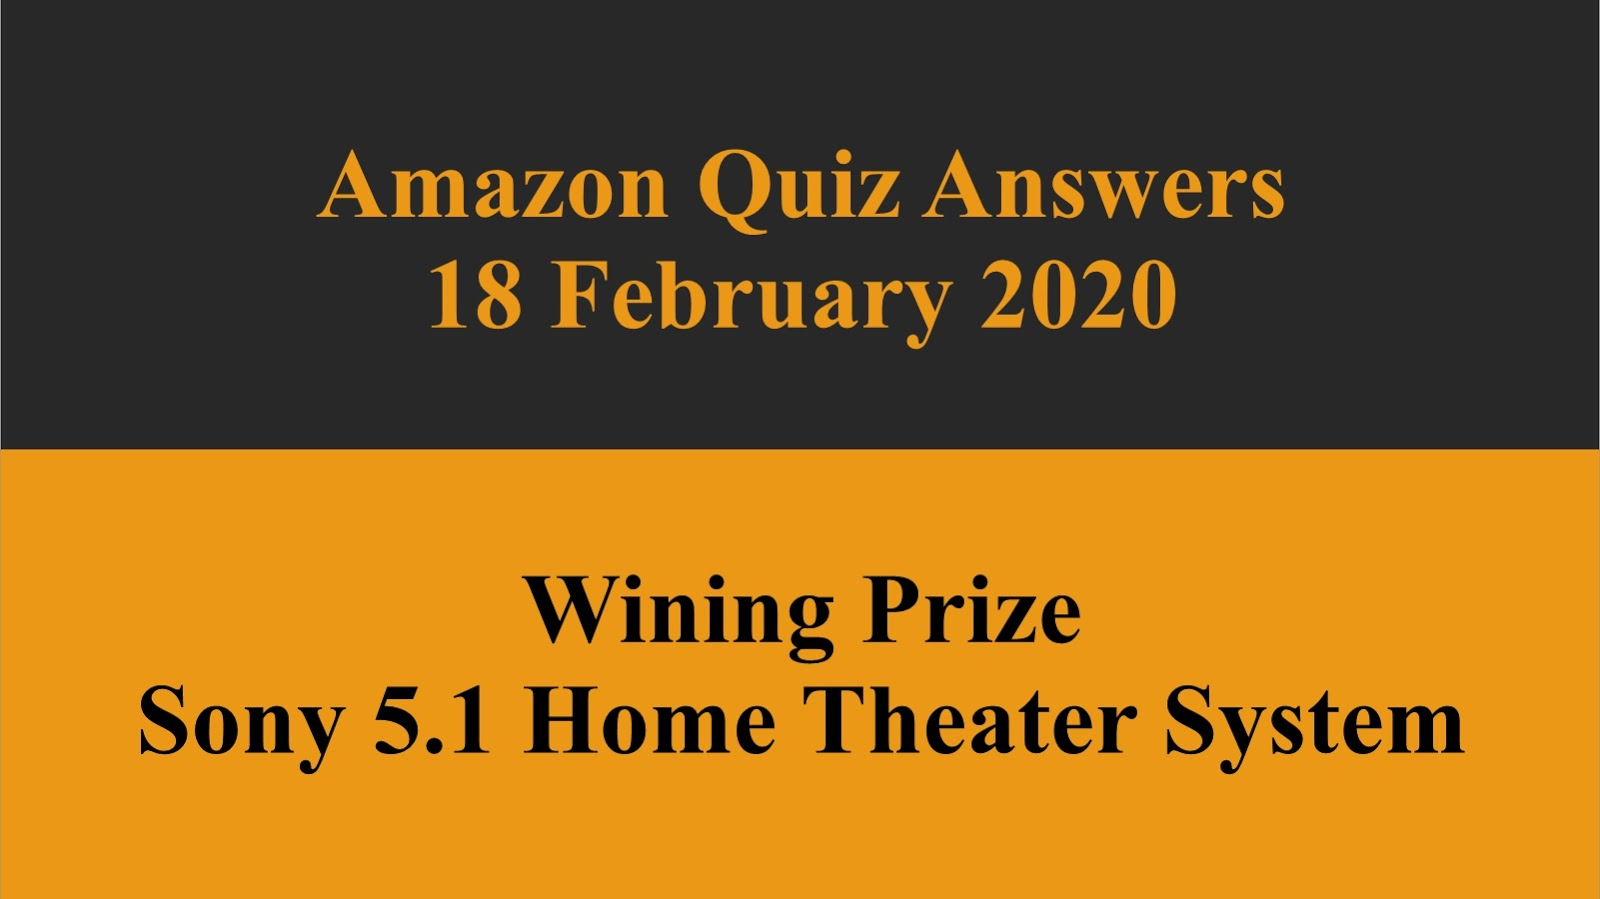 Amazon Daily Quiz Answers 18 February 2020